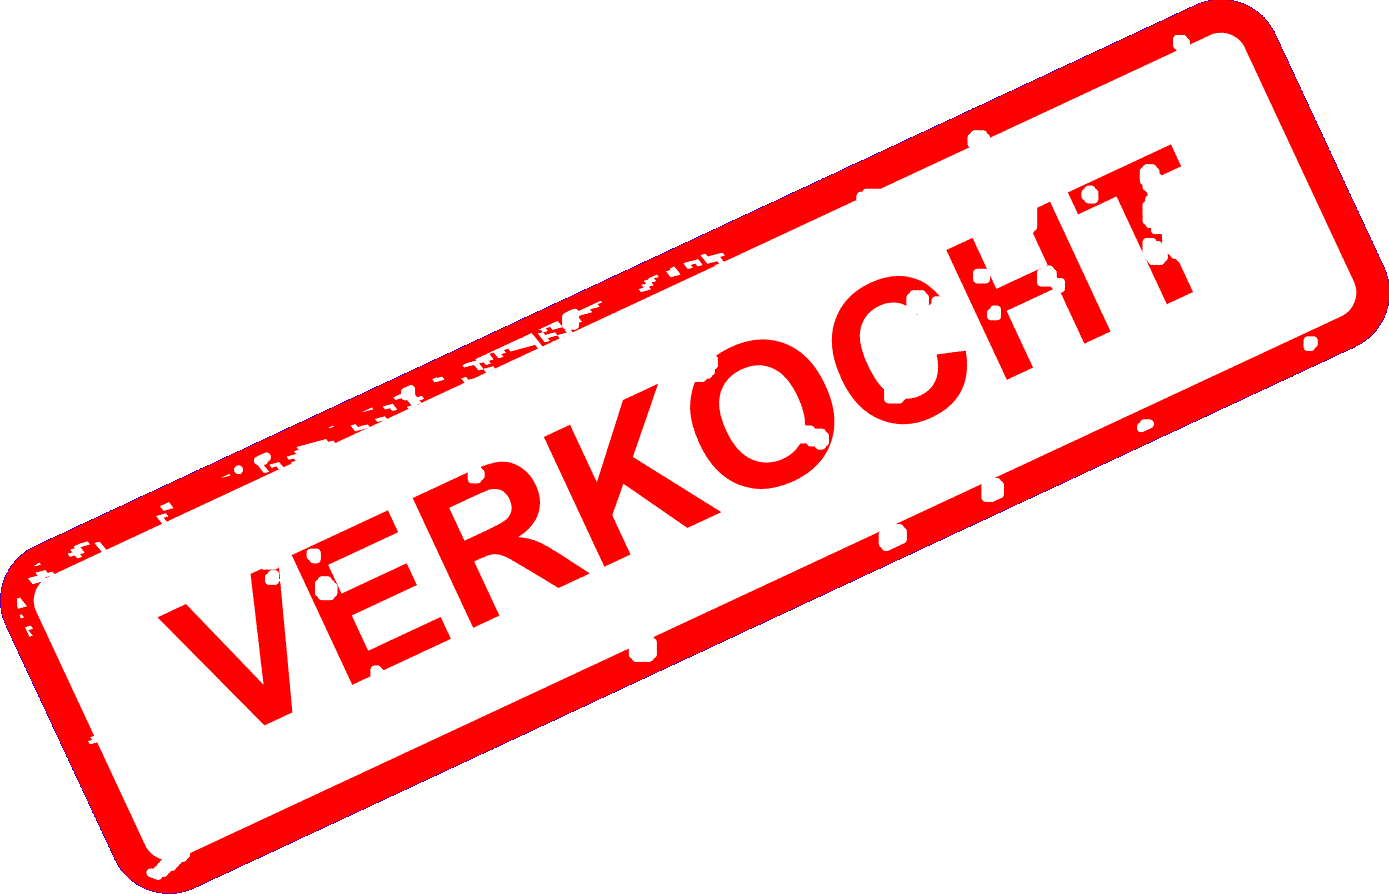 Verkocht Trailer on dpo